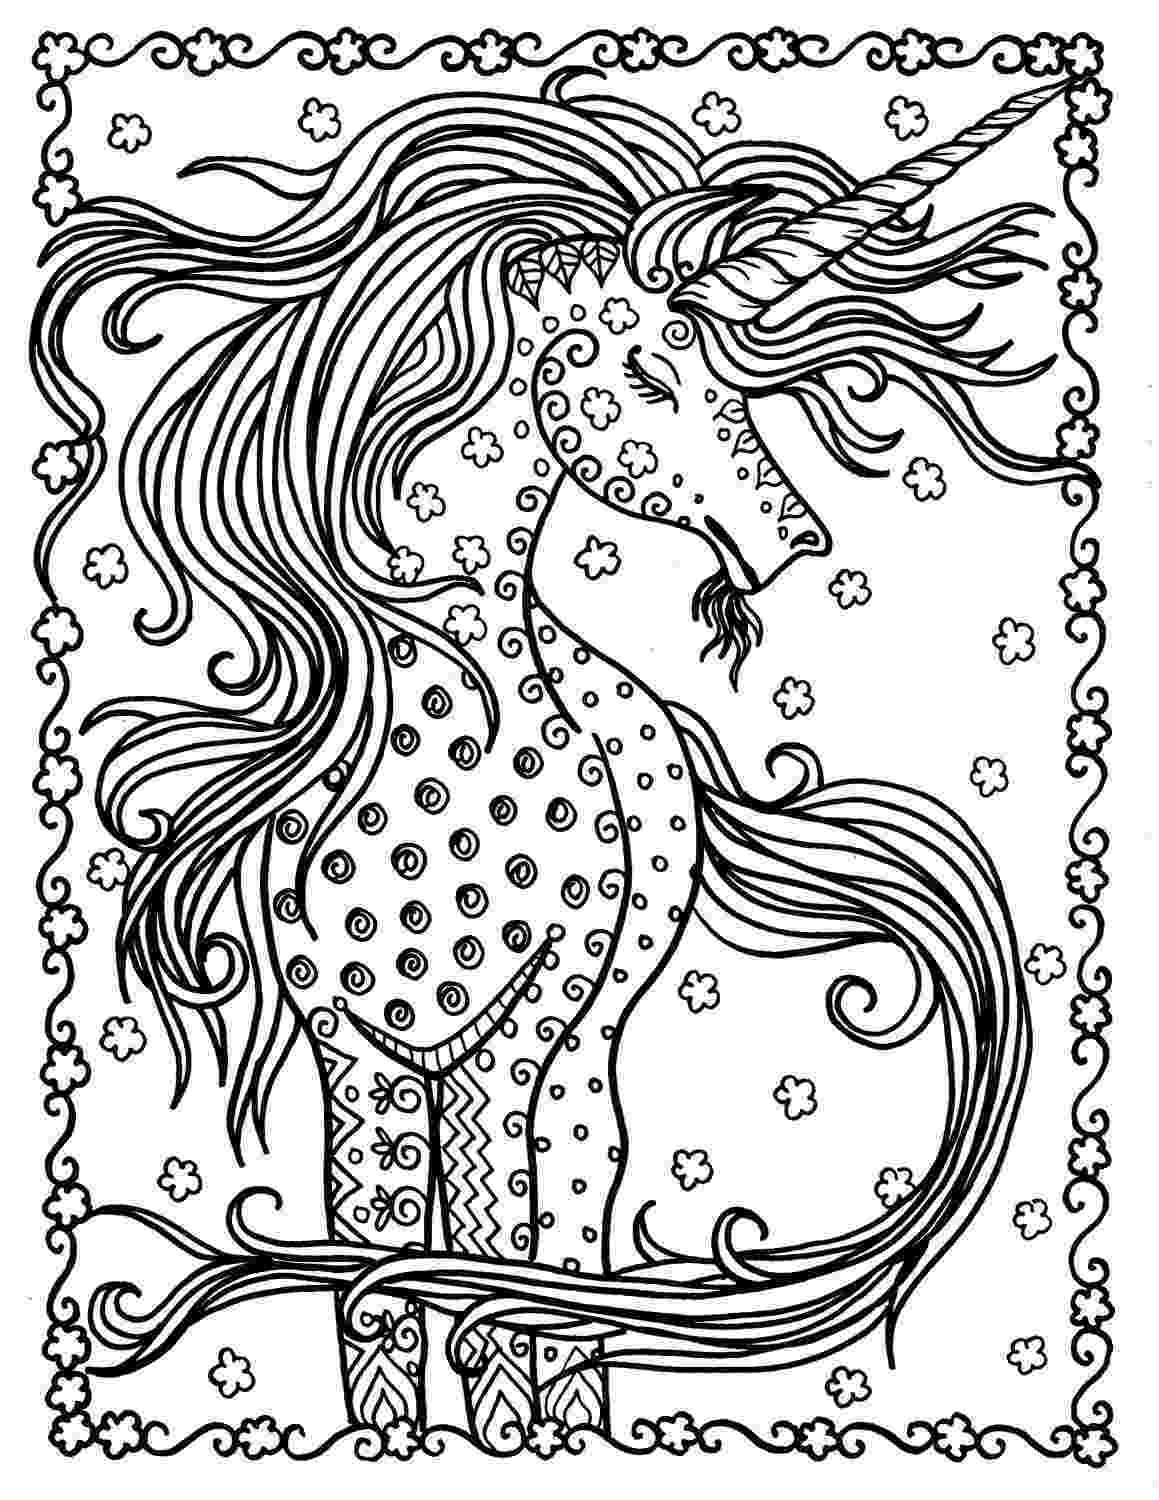 unicorn coloring pages for adults unicorn instant download fantasy coloring pages adult adults pages unicorn for coloring